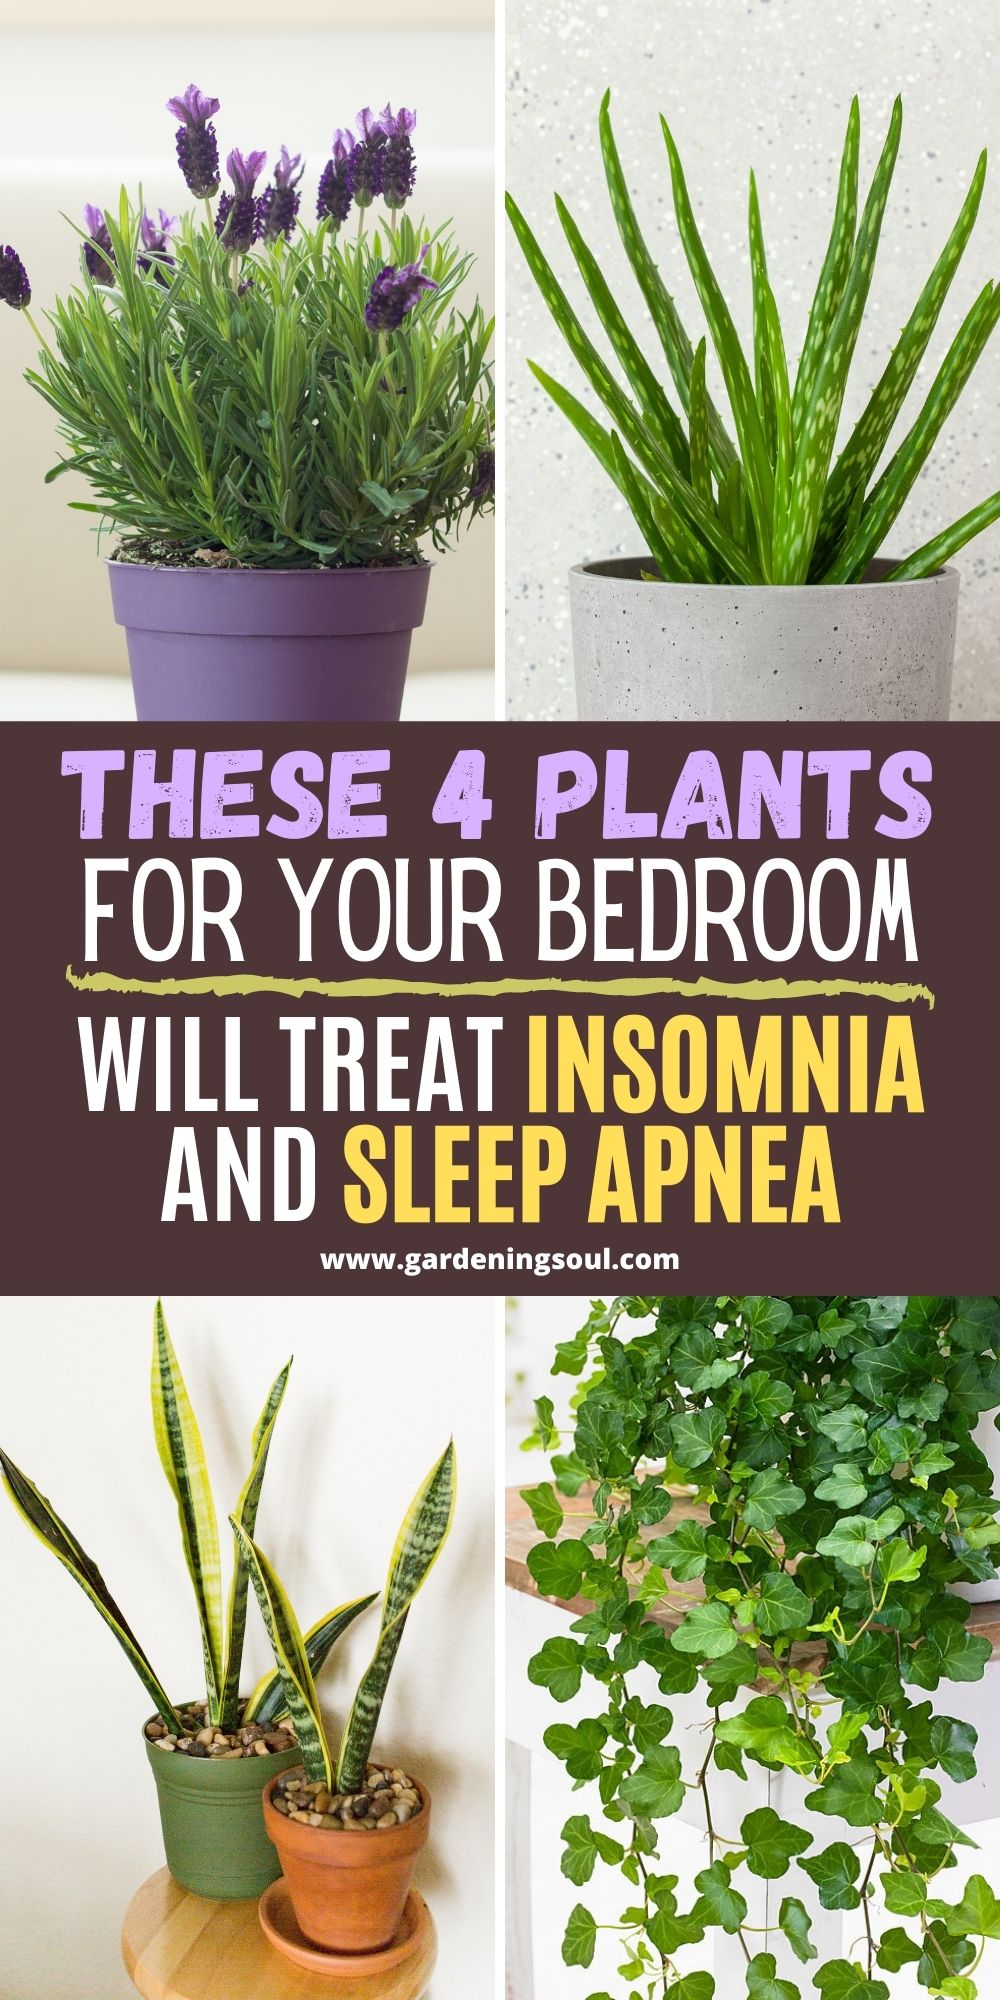 Photo of These 4 Plants For Your Bedroom Will Treat Insomnia and Sleep Apnea